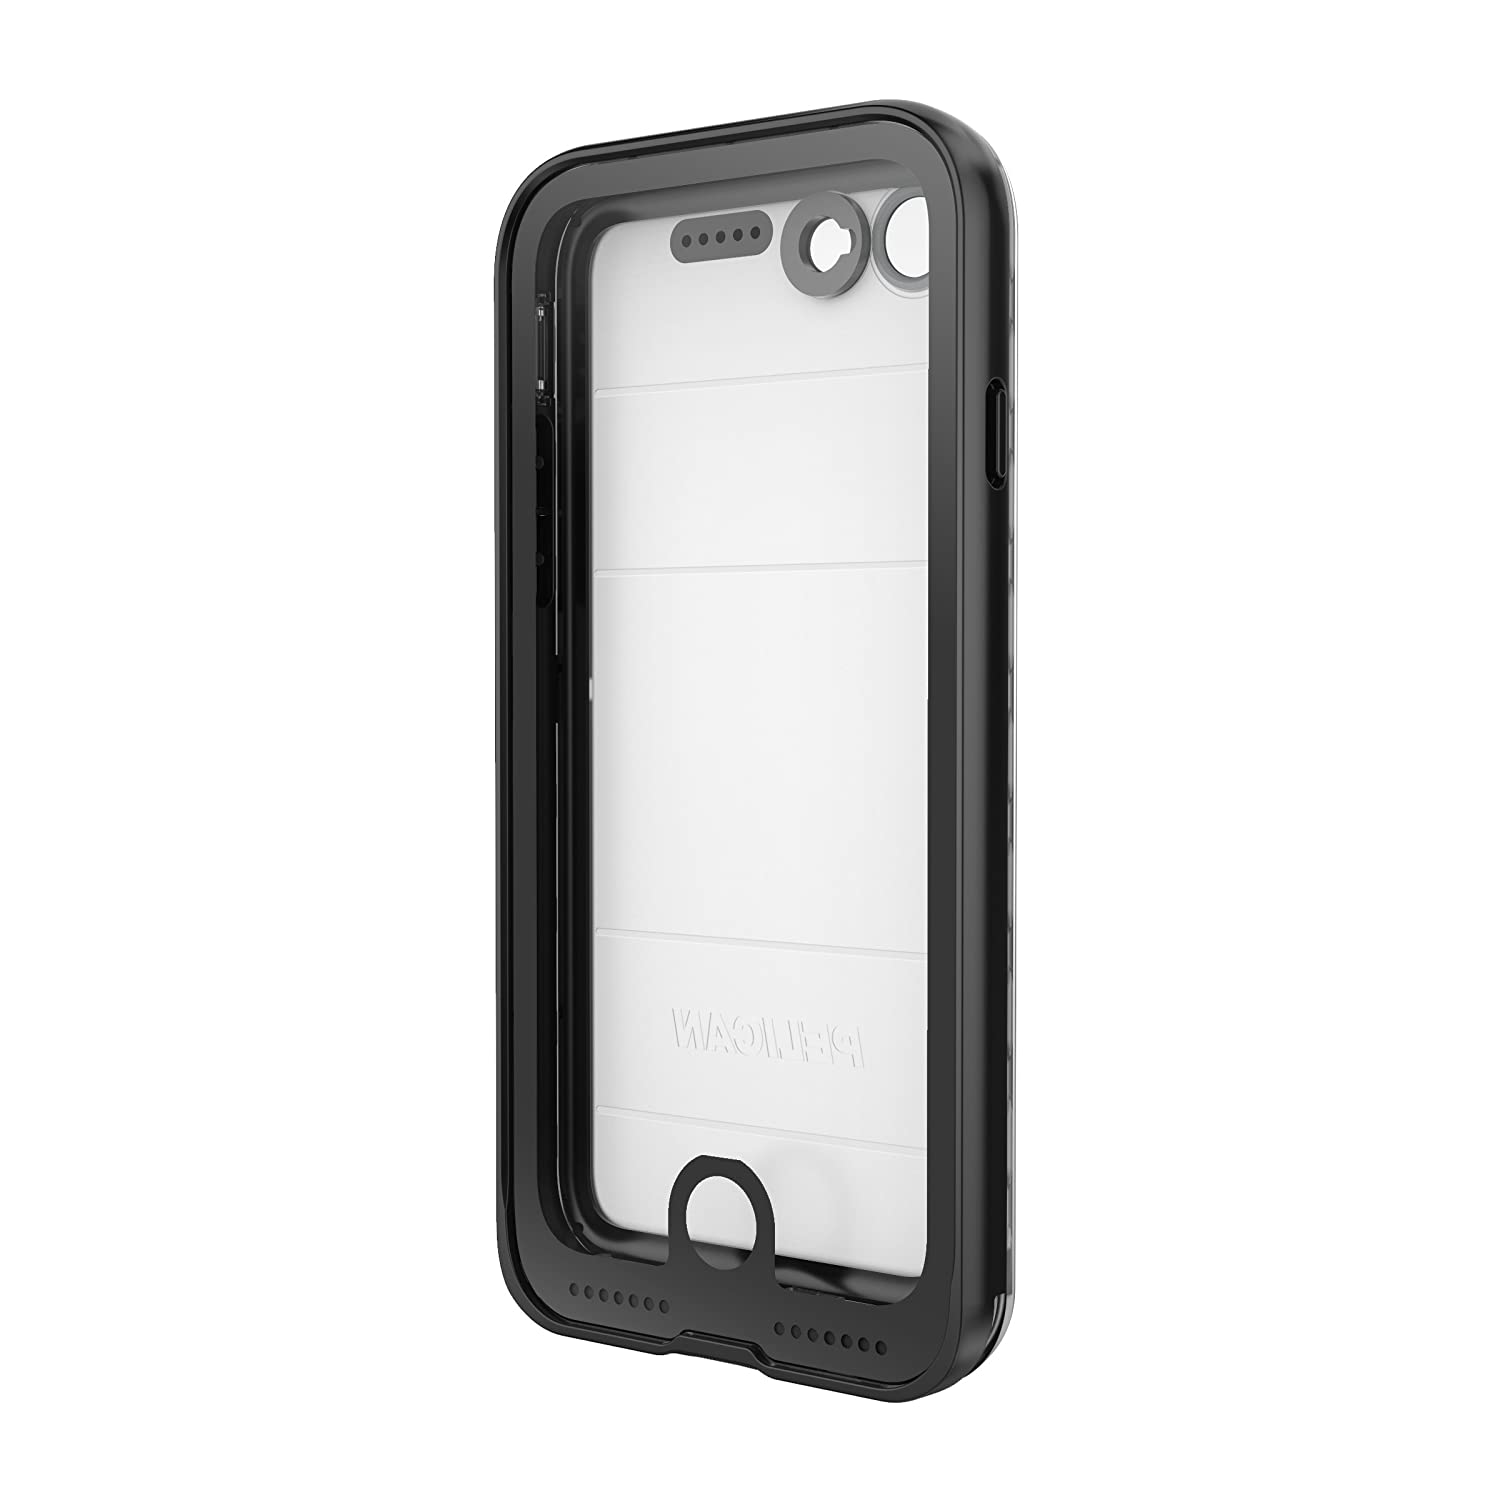 Iphone X Case Pelican Marine Waterproof For Cell Phone Shield With Charger Clear Black Phones Accessories